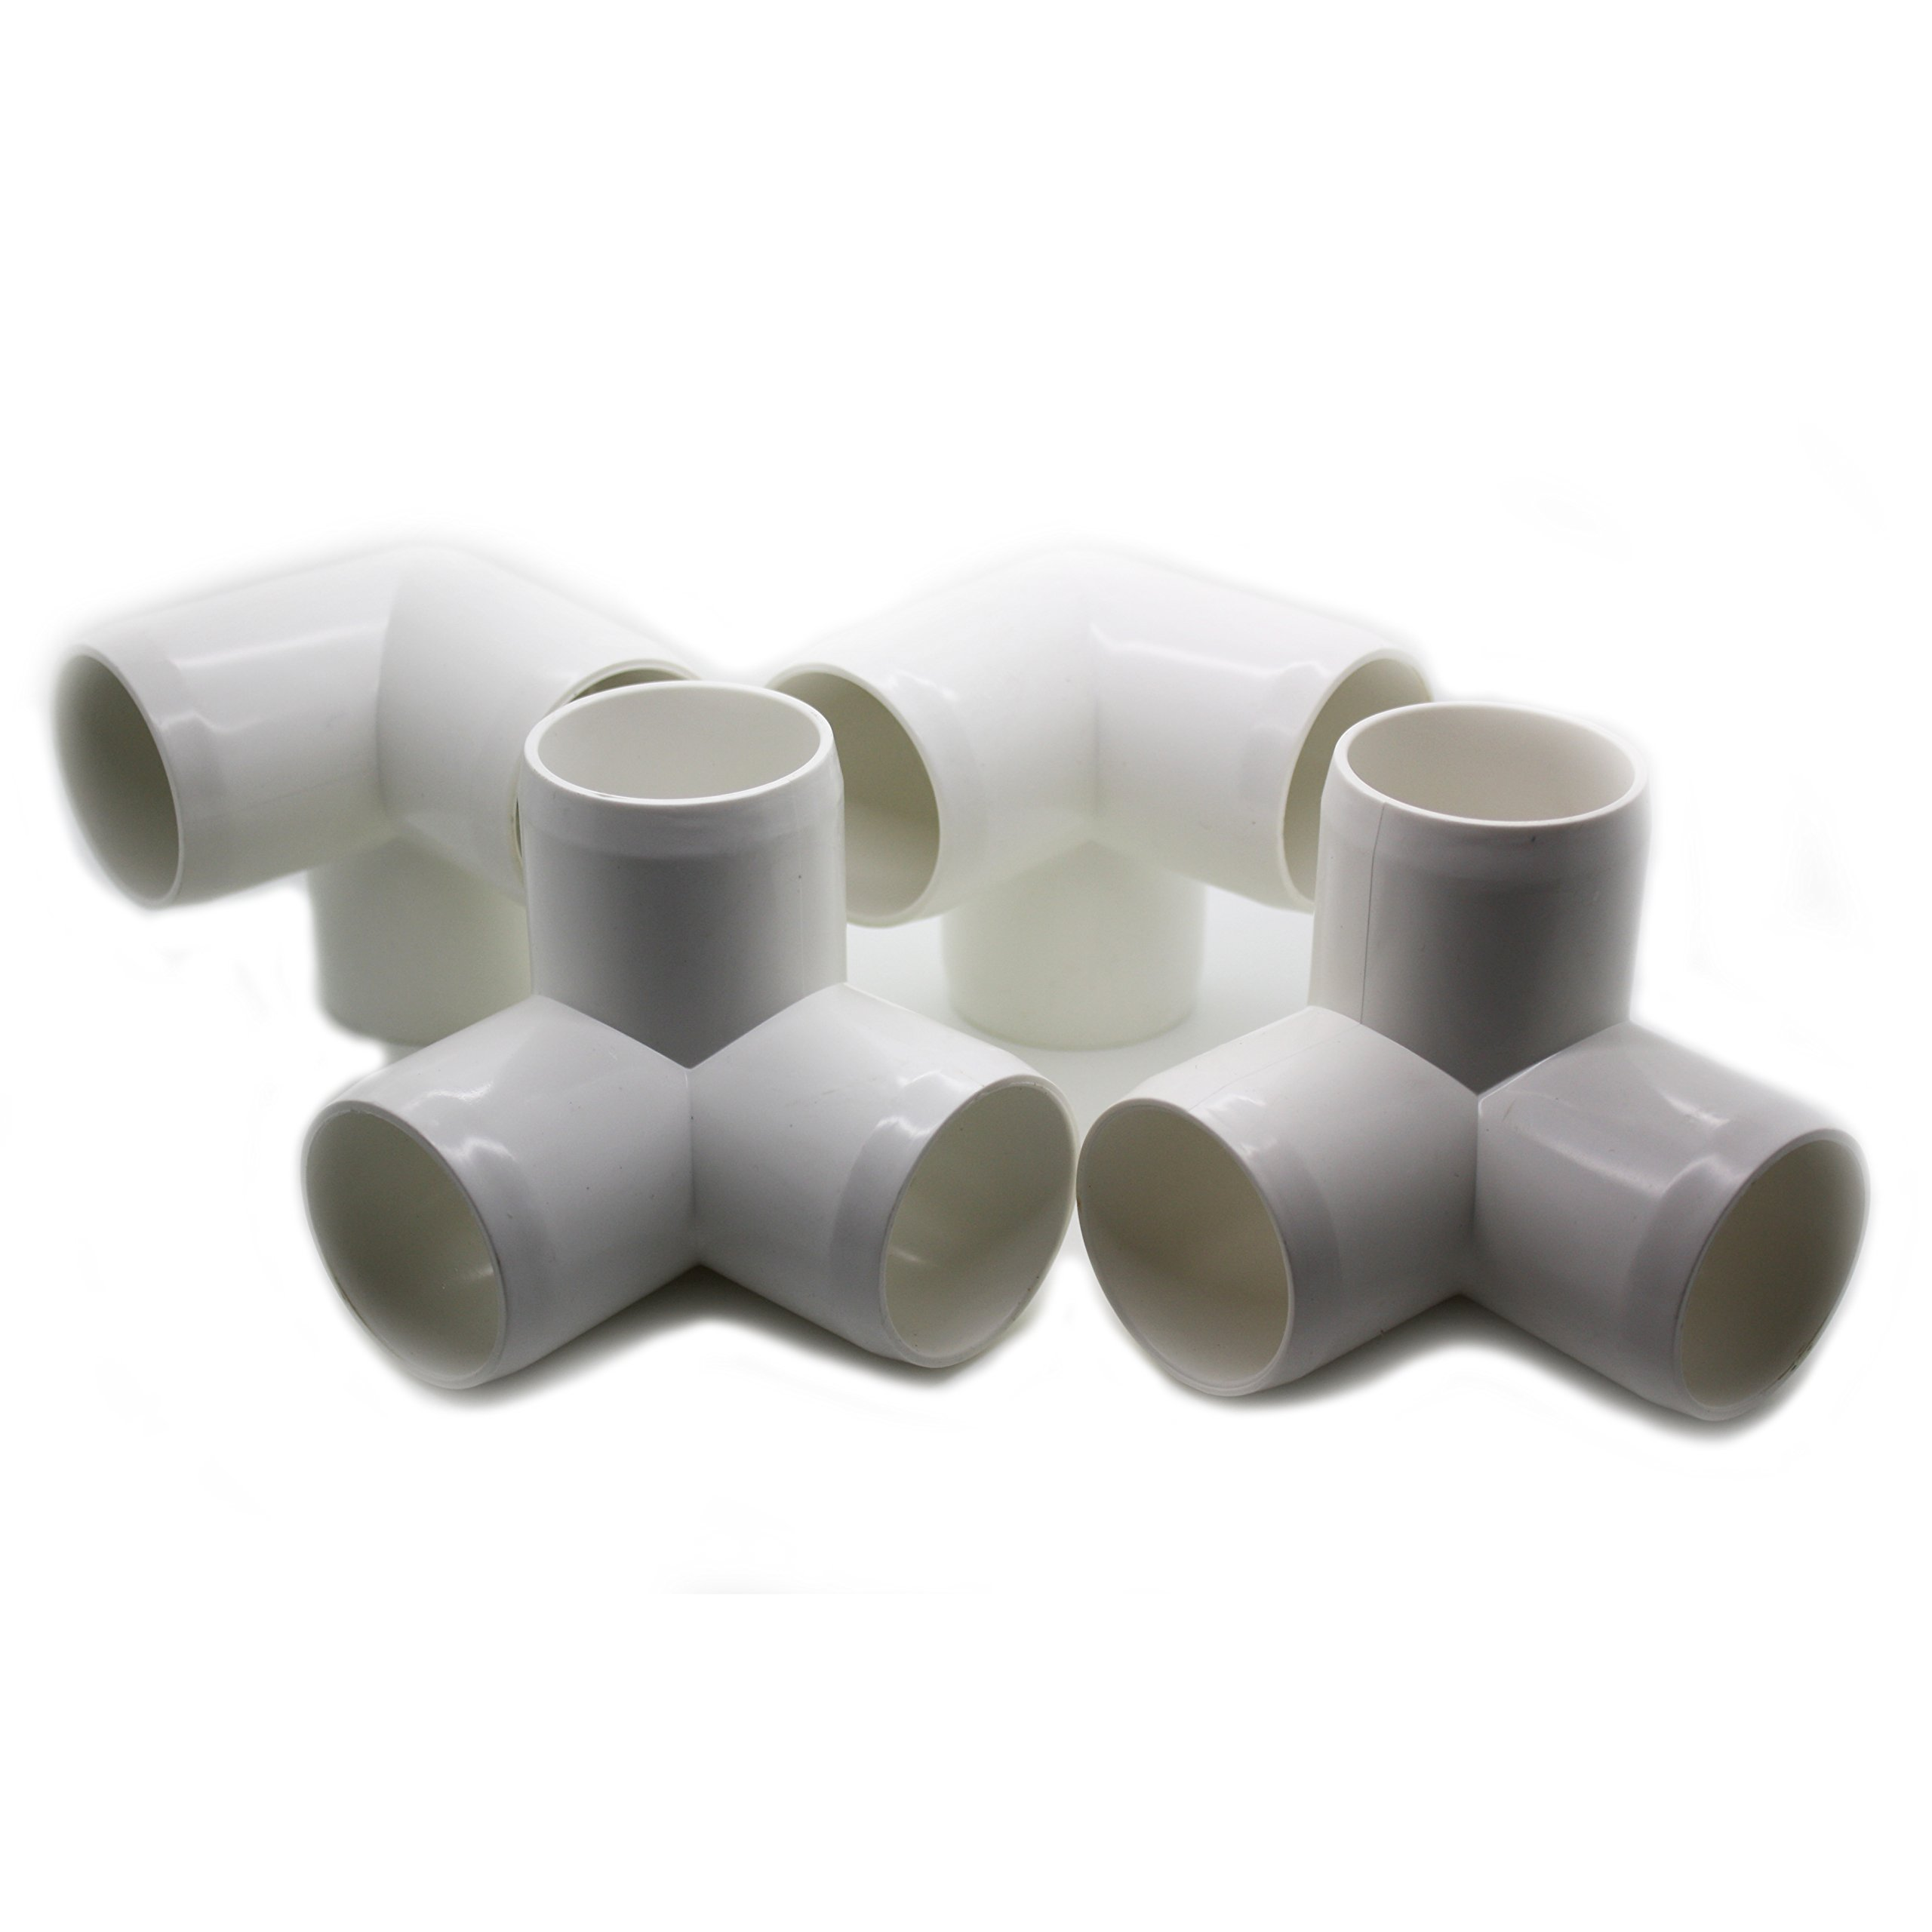 3 Way Tee PVC Fitting - Build Heavy Duty PVC Furniture - Grade SCH 40 PVC 1'' Elbow Fittings - For One Inch Size Pipe - White [4 Pack]